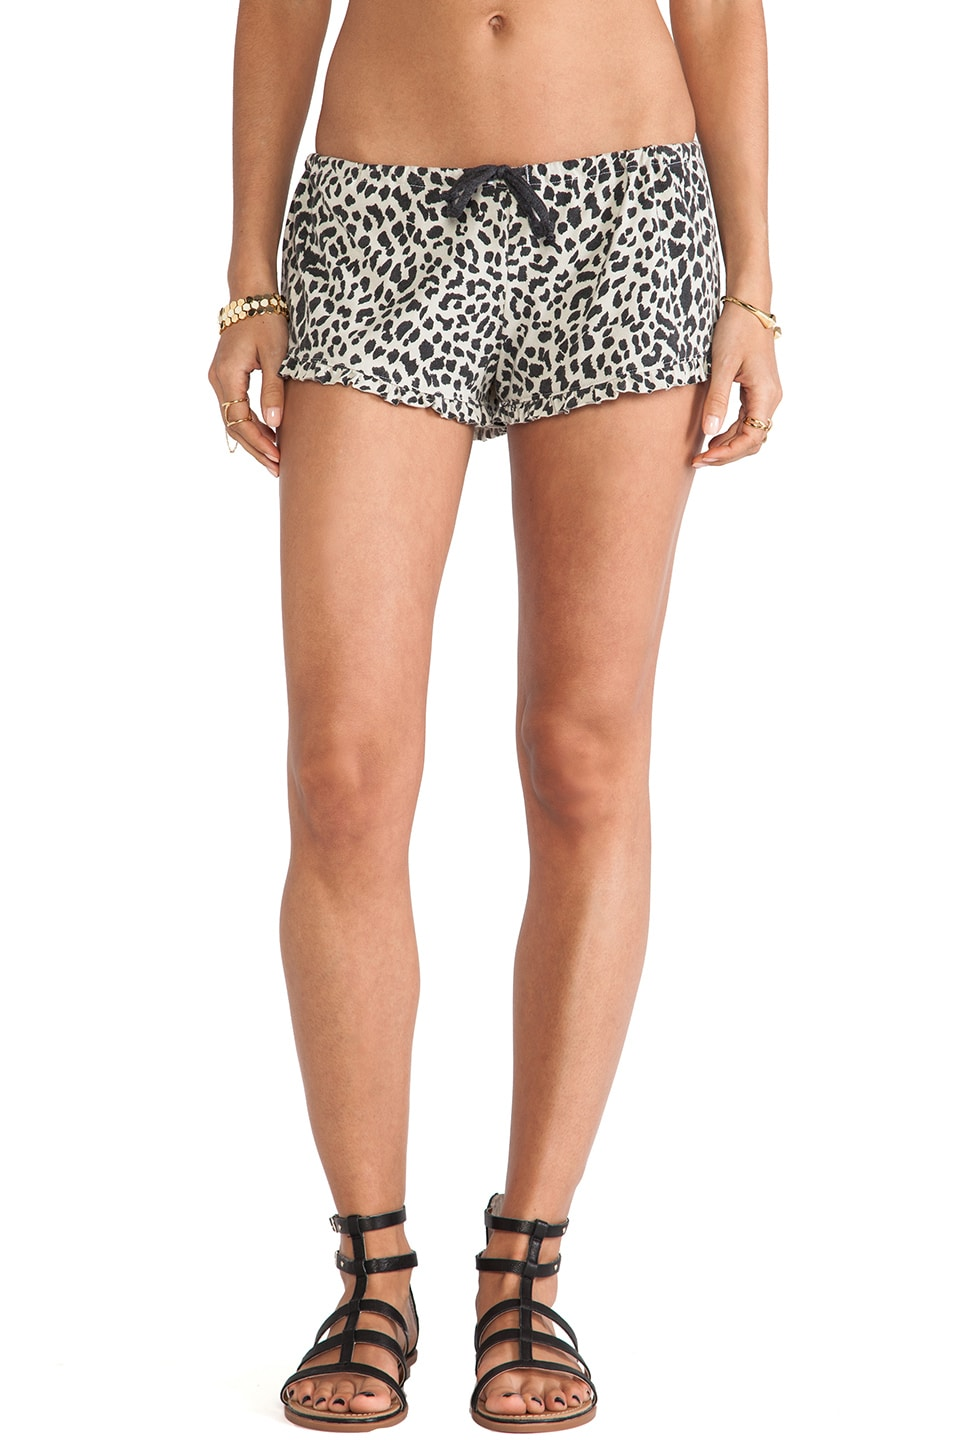 Chaser Ruffle Animal Print Short in Lace